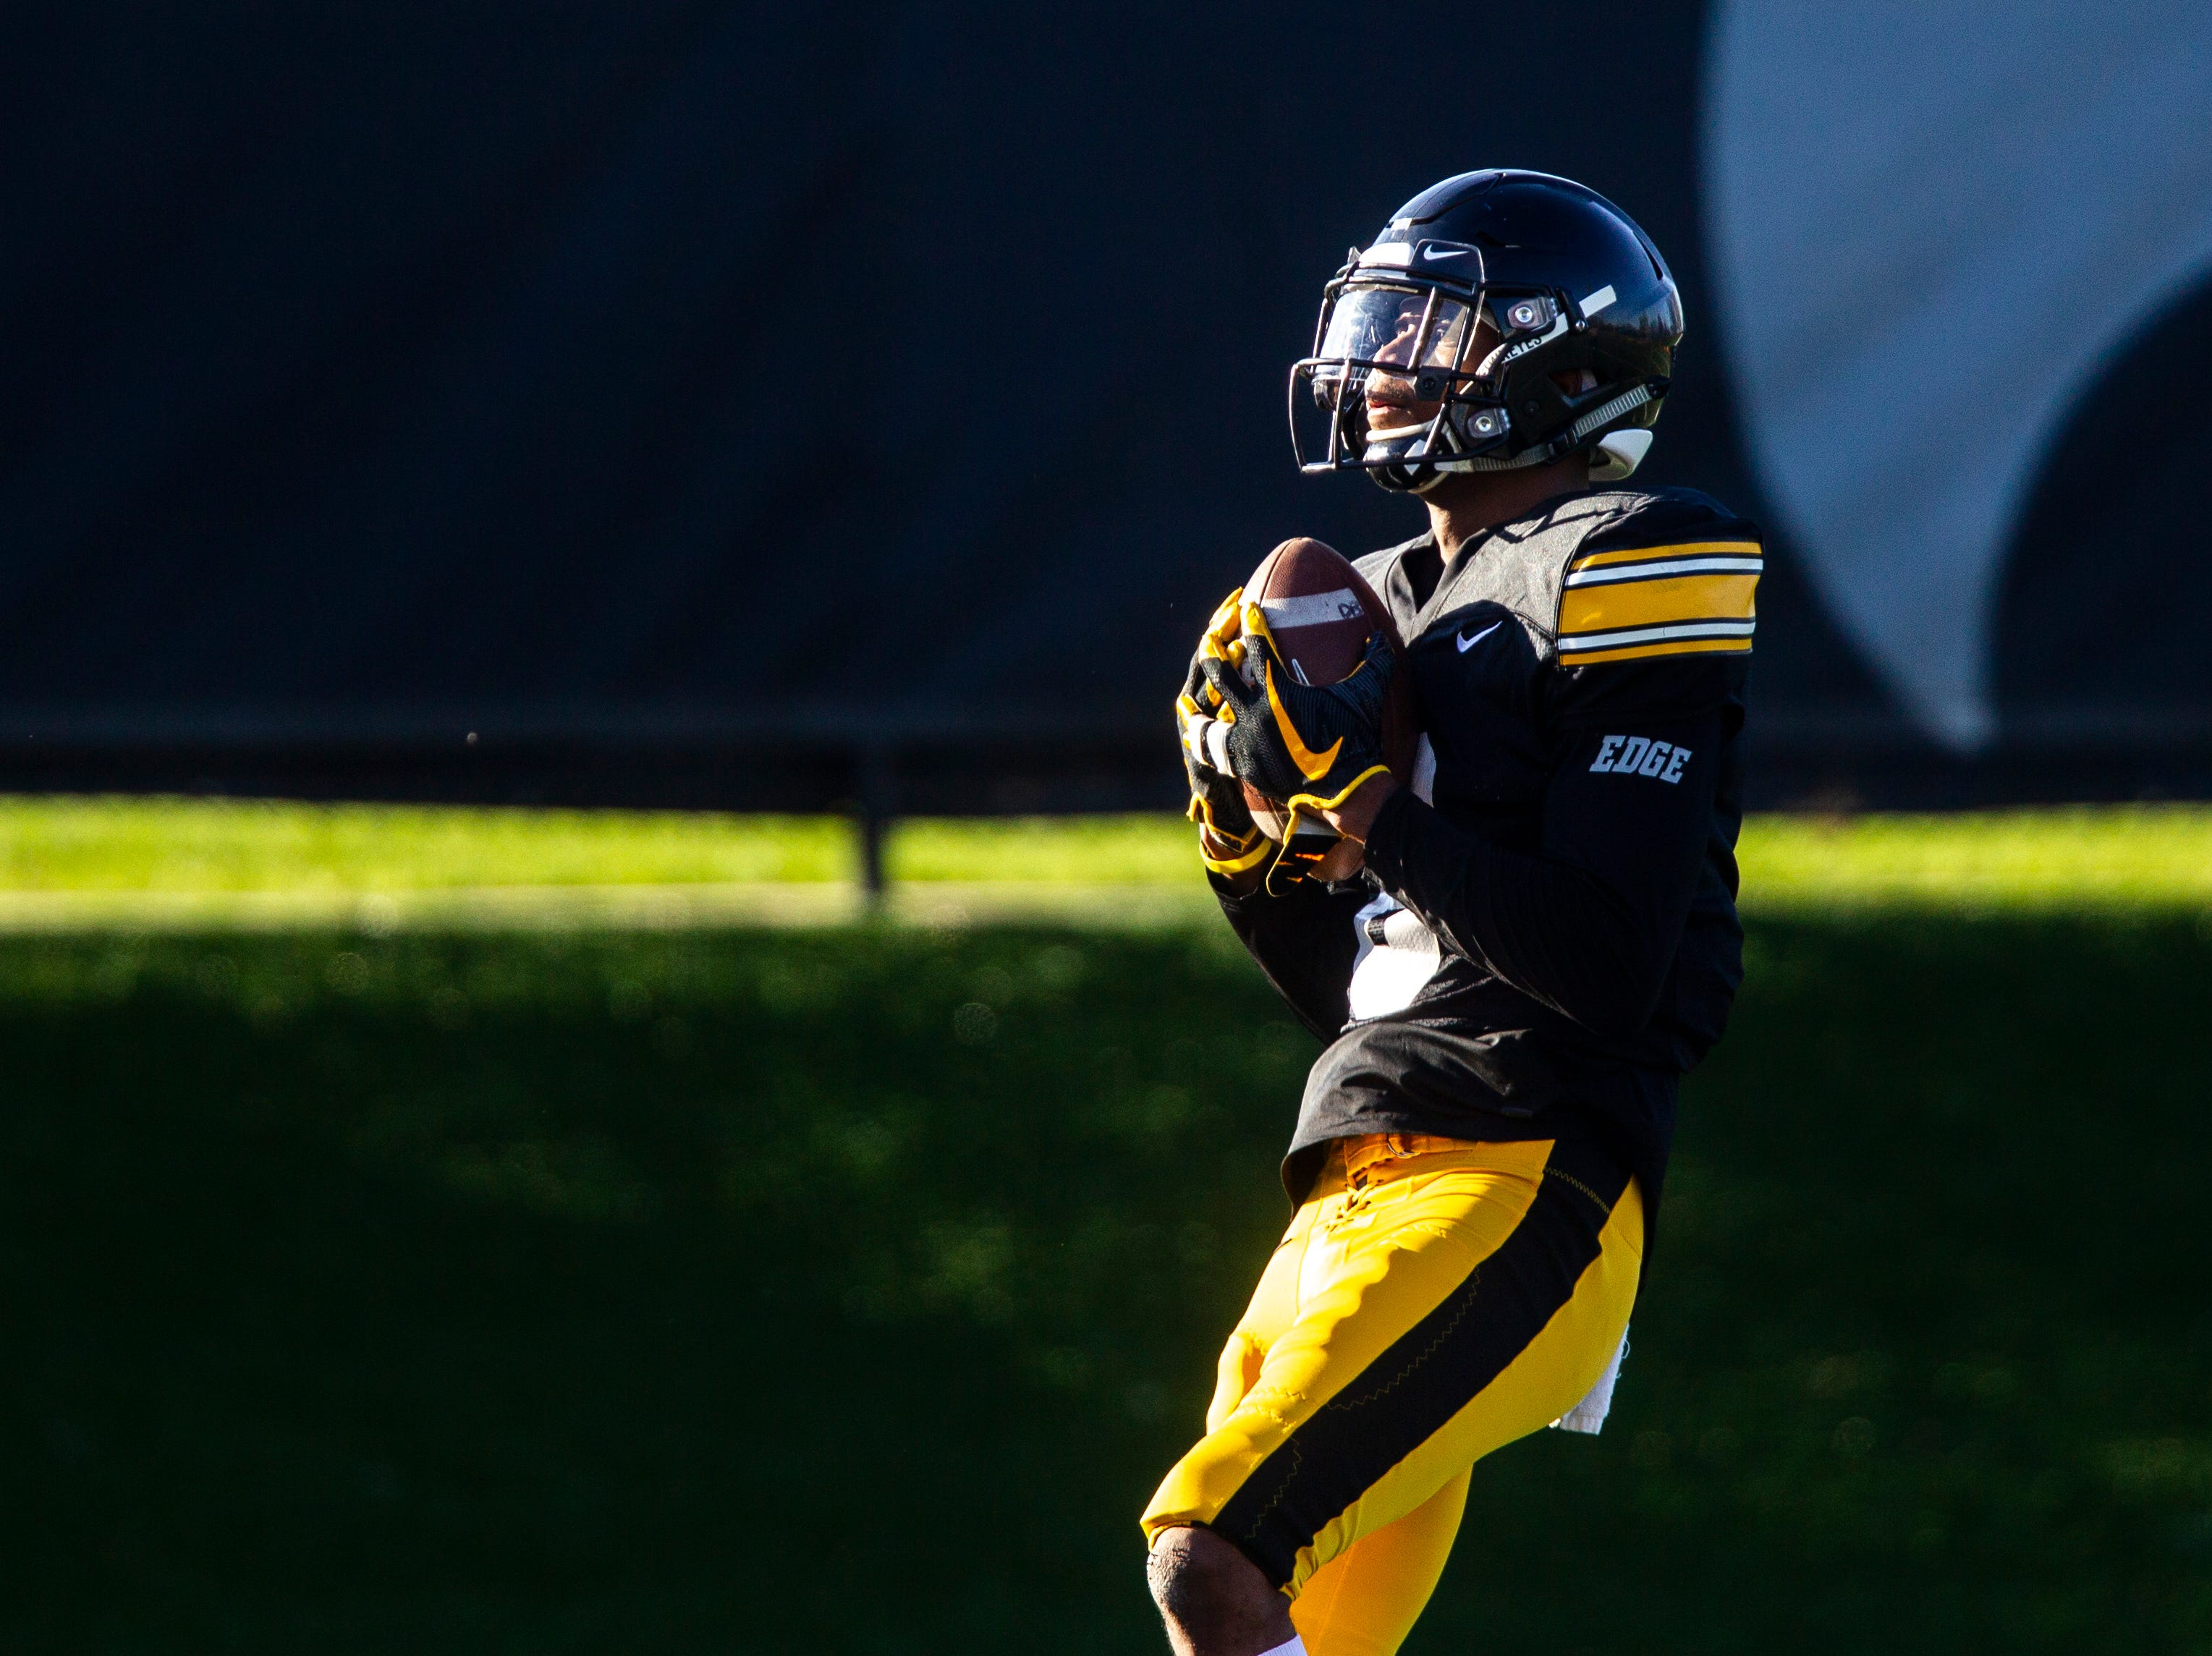 Iowa wide receiver Ihmir Smith-Marsette (6) catches a punt return during the final spring football practice, Friday, April 26, 2019, at the University of Iowa outdoor practice facility in Iowa City, Iowa.